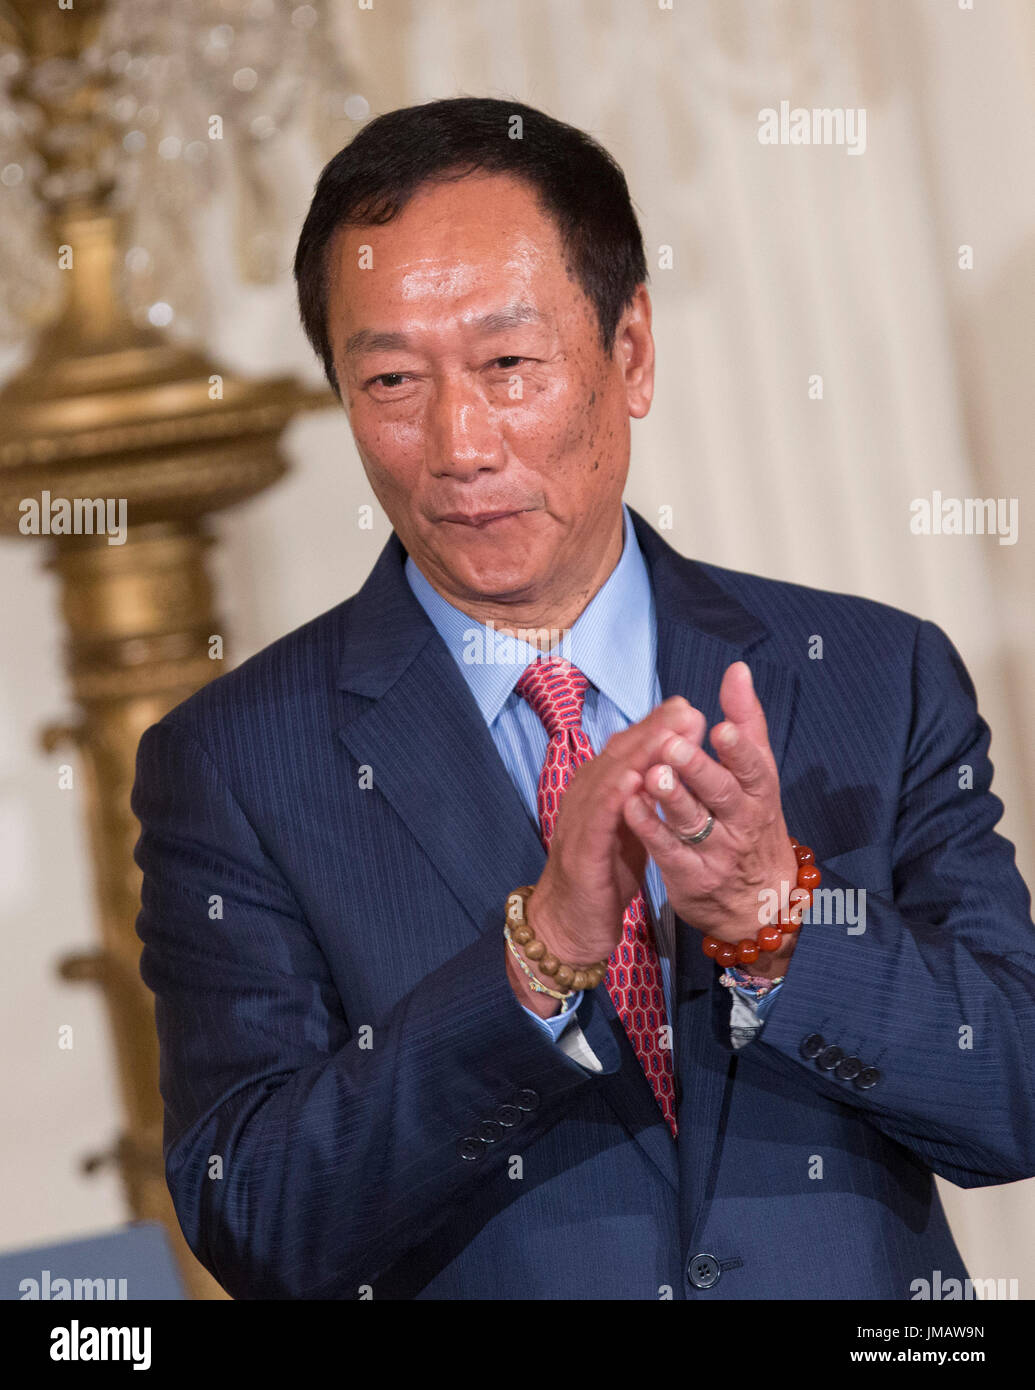 Washington, Us. 26th July, 2017. Foxconn CEO Terry Gou applauds during the announcement of the creation of a Foxconn Stock Photo